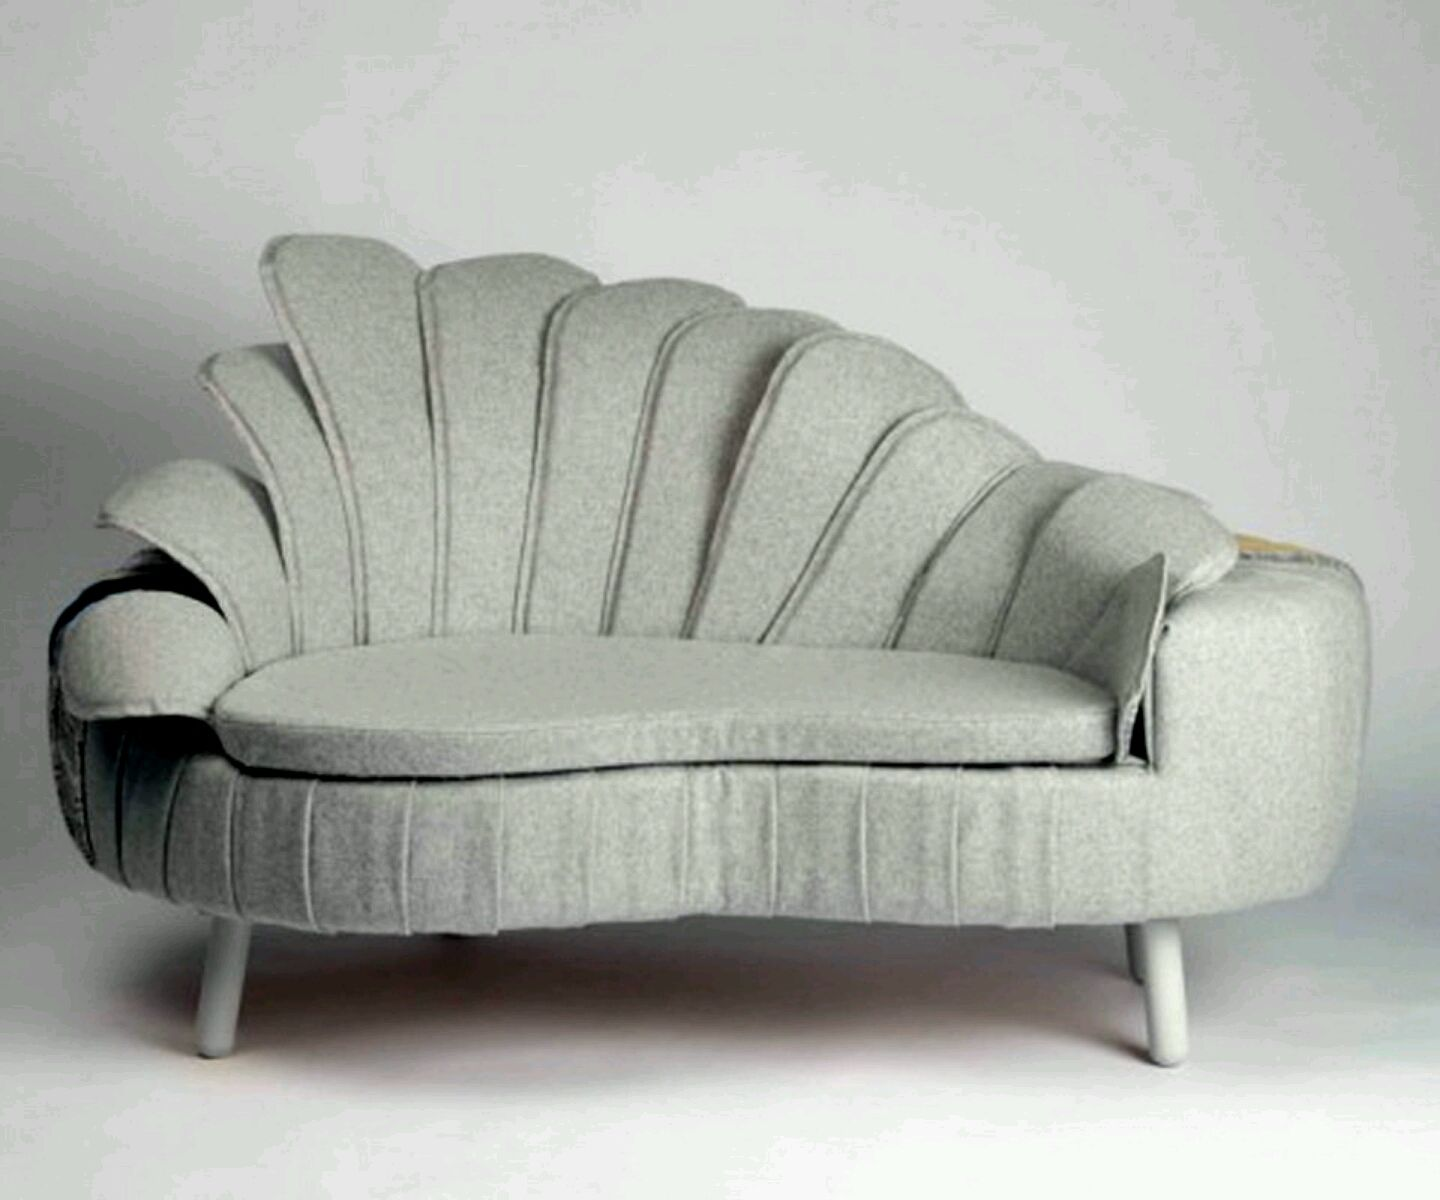 Most Unique Sofa Design Ideas httpwwwdalahooco2286most unique sofa